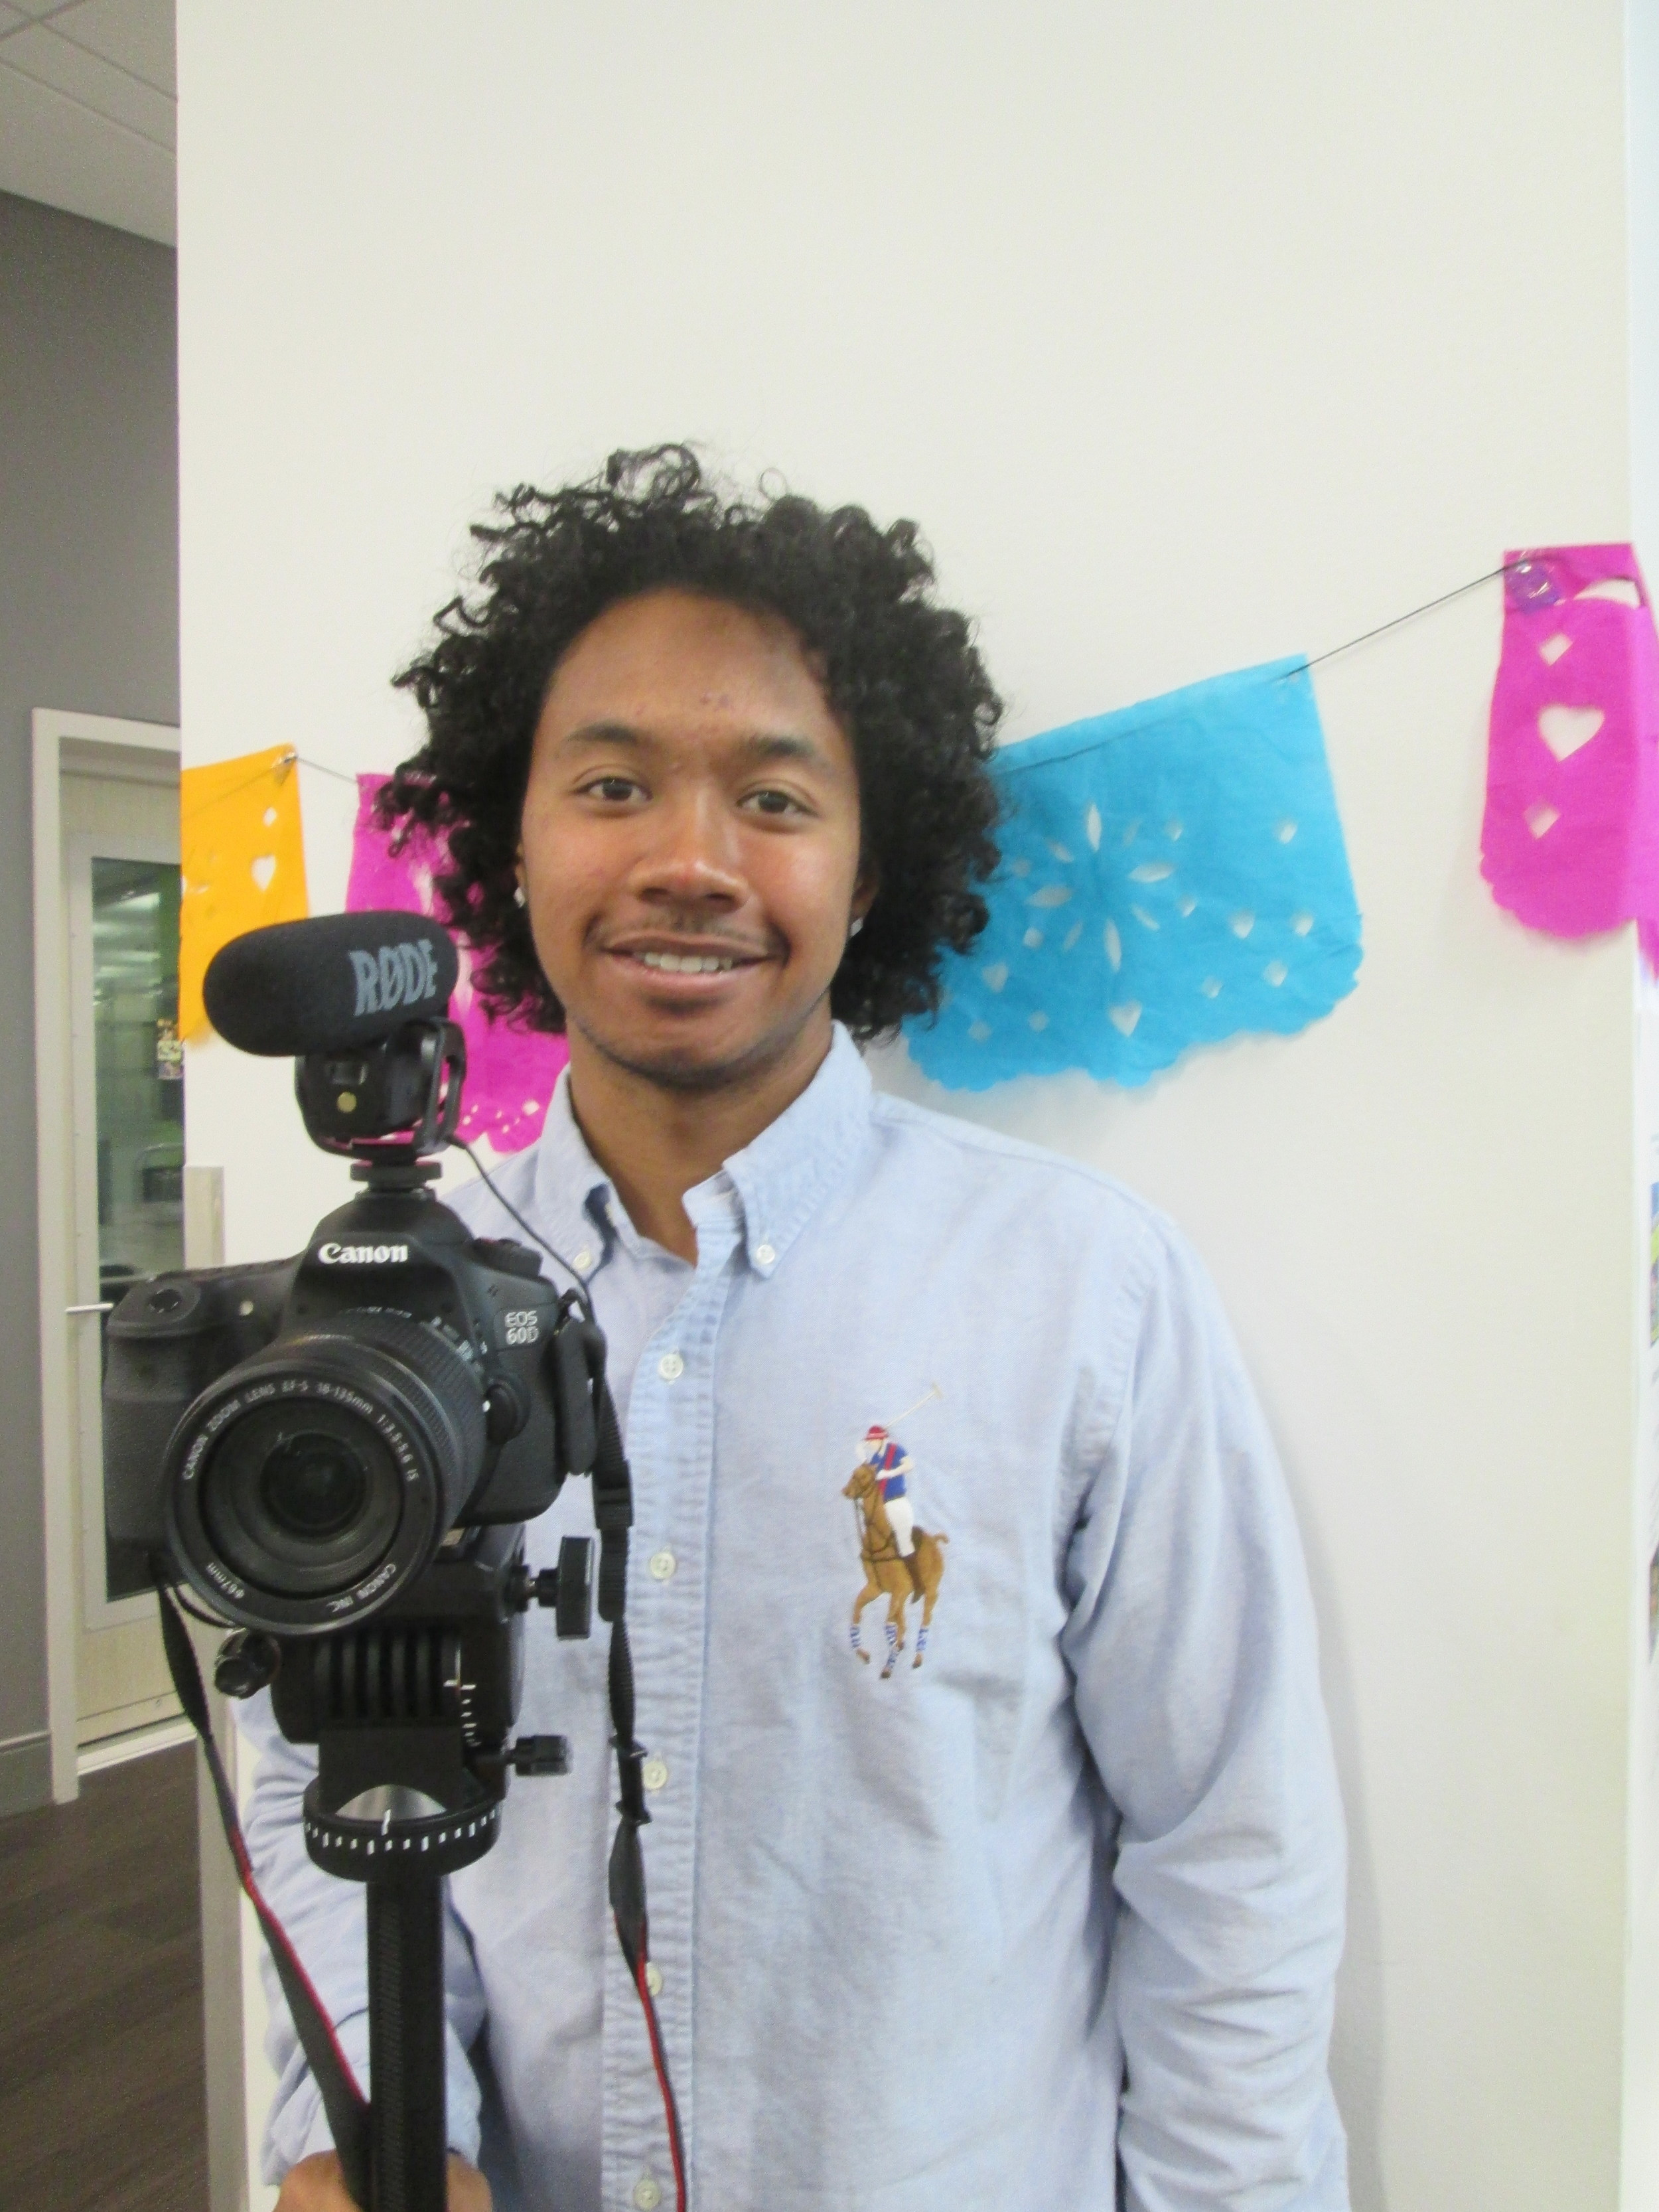 SFPL BAY leader and videographer, Jayraj Govender